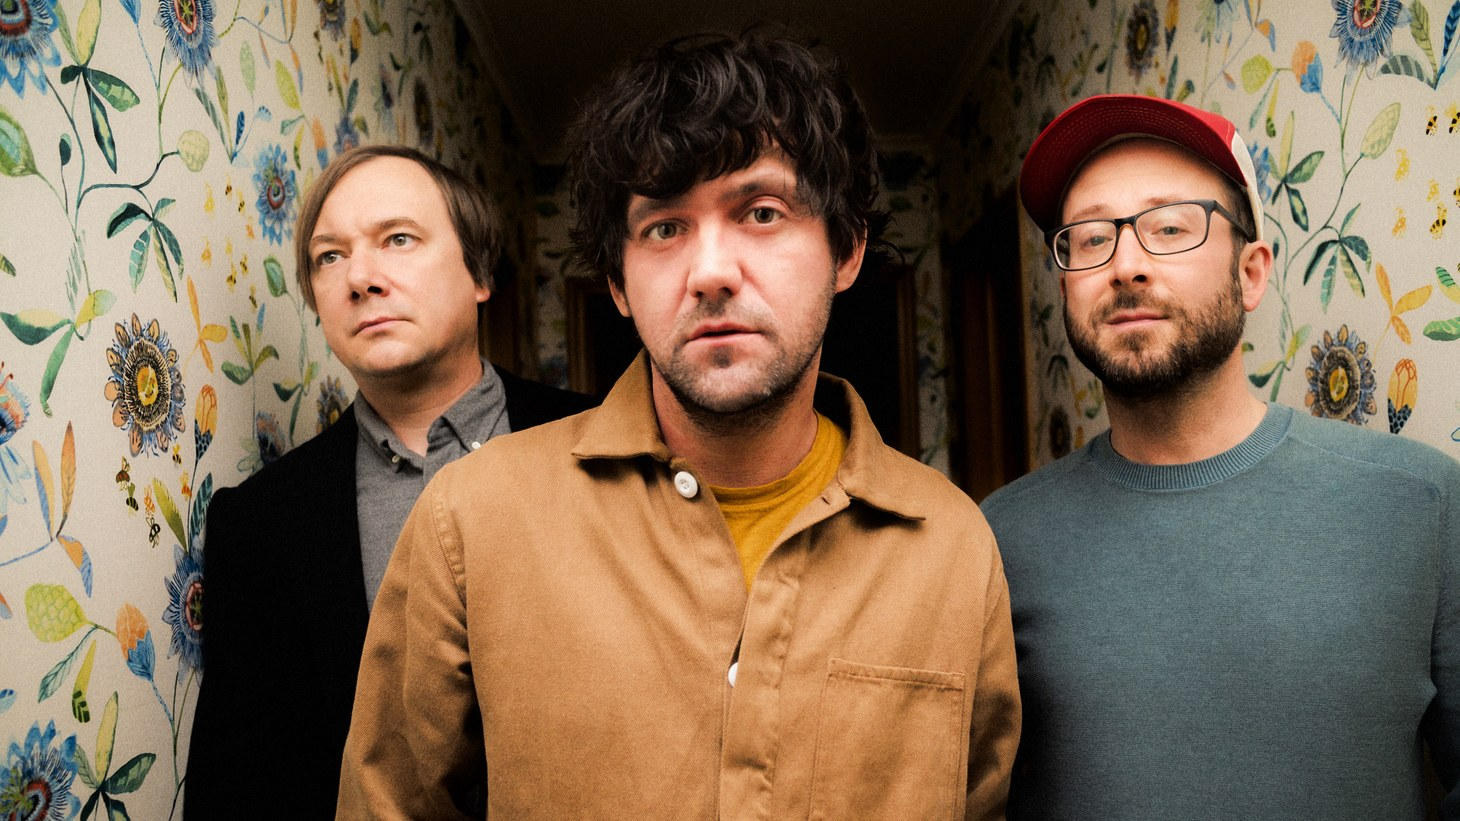 2020 is a milestone year for Bright Eyes, celebrating 20 years of the album Fevers and Mirrors, and reuniting after a long hiatus. Lead by poetic songwriter Conor Oberst, the trio explores uncertainty in their inimitable style.